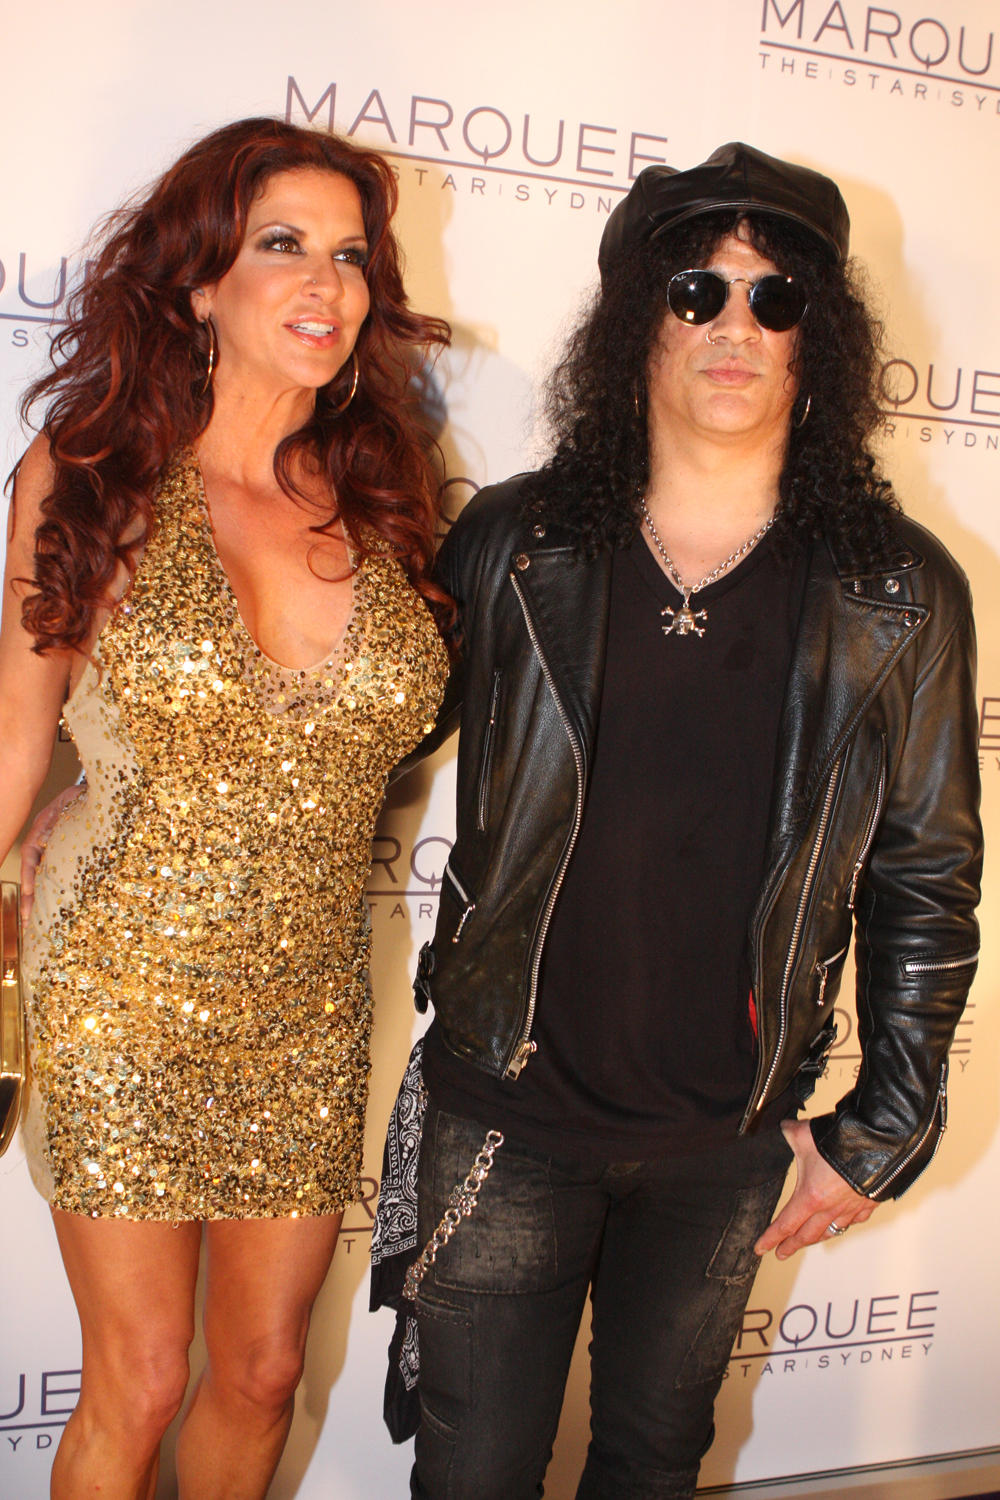 Slash's Ex-Wife Perla Ferrar is Living Life on the Beach ... |Perla Hudson Instagram